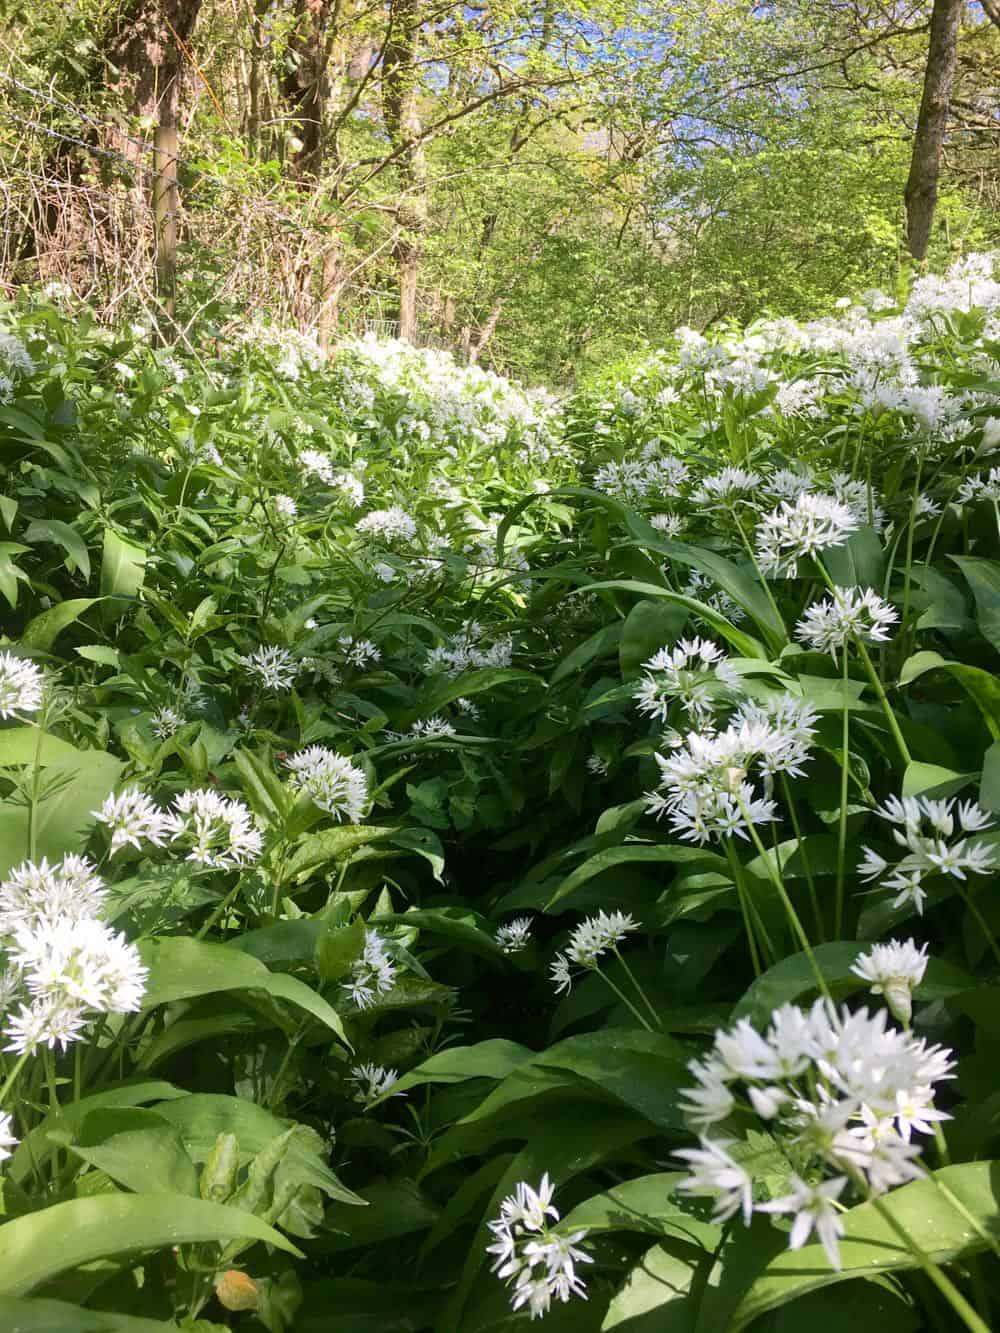 A ditch filled with flowering wild garlic